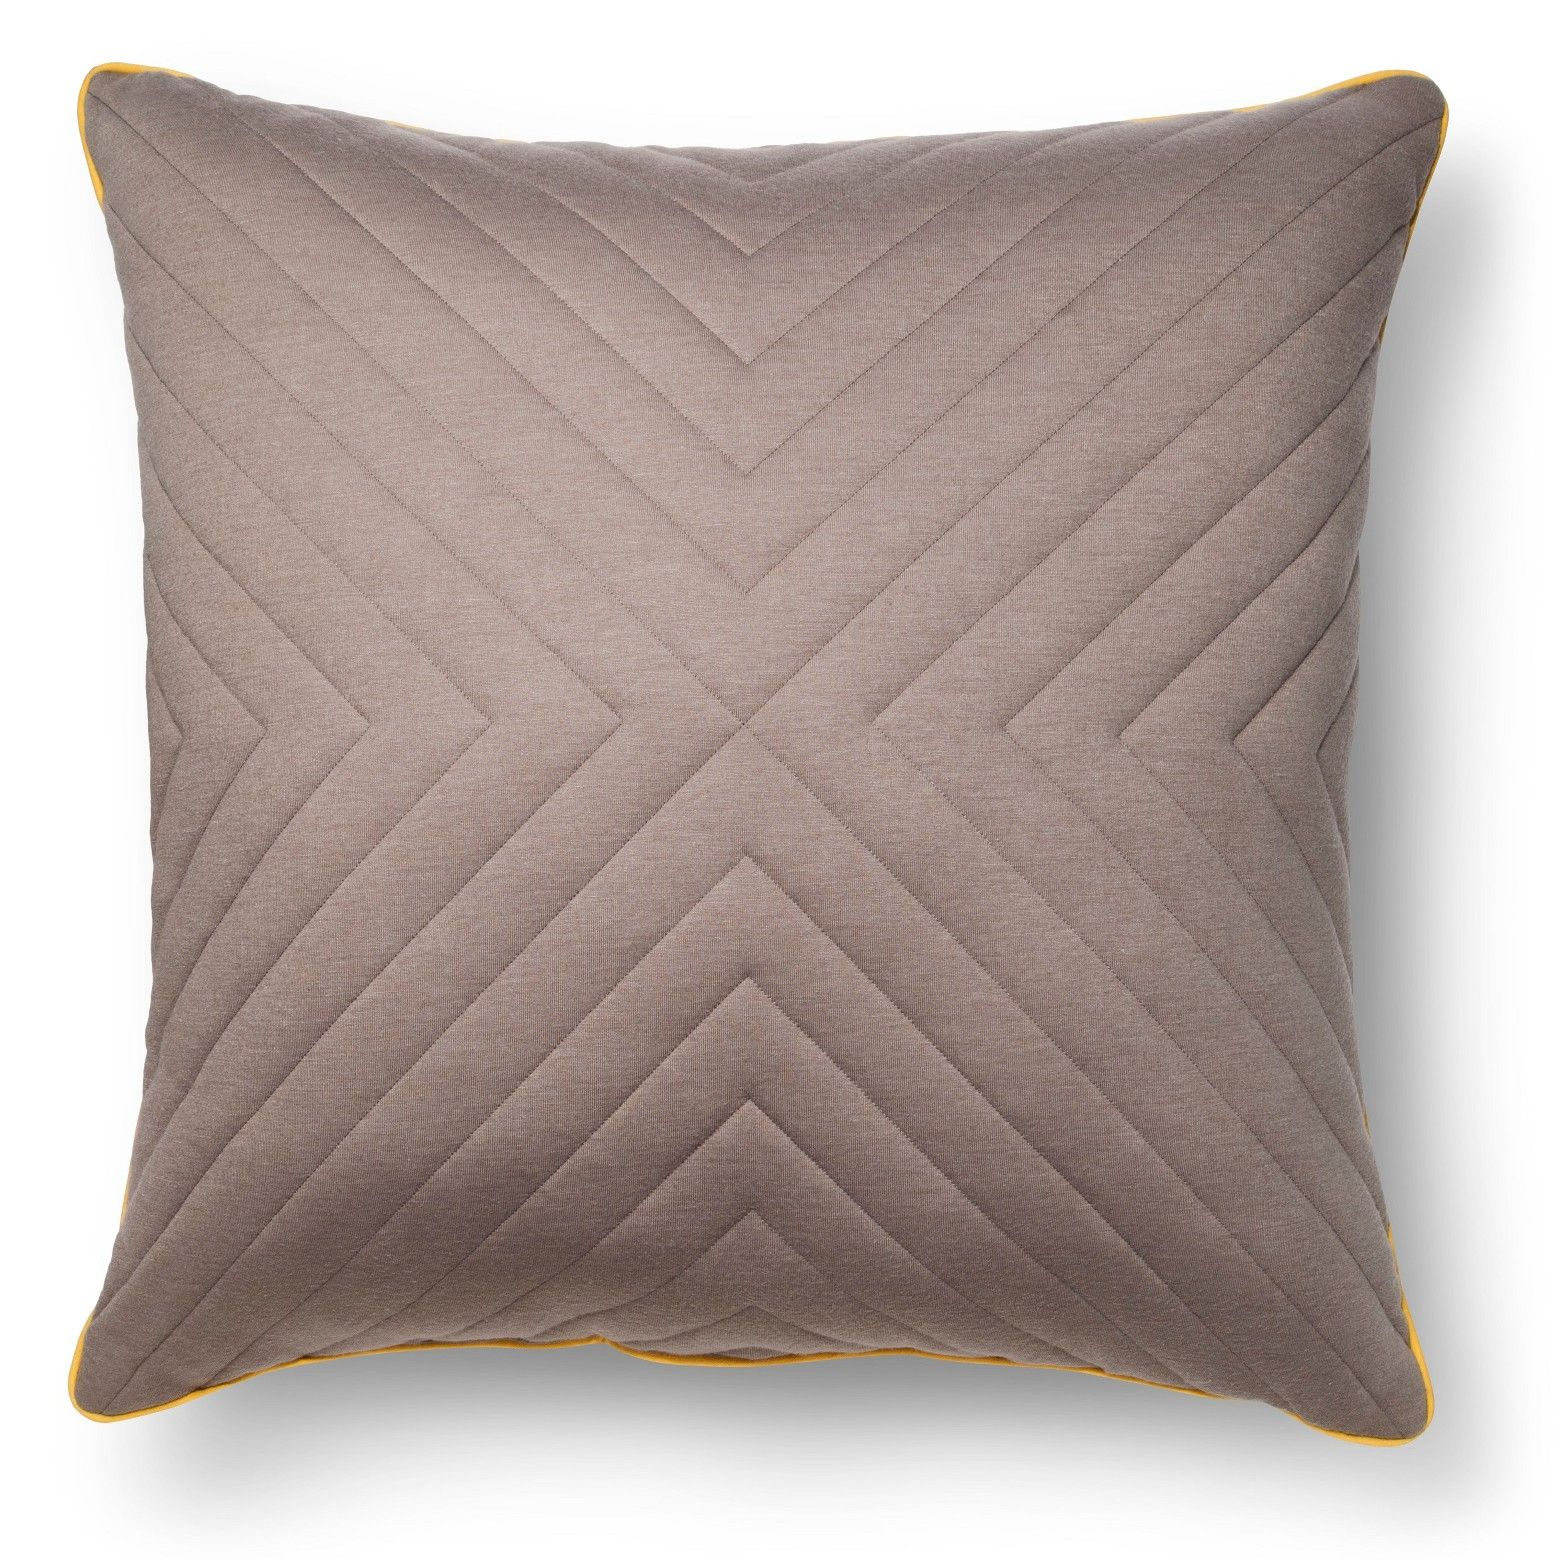 Room Essentials Oversized Quilted Jersey Throw Pillow (17x17 ...